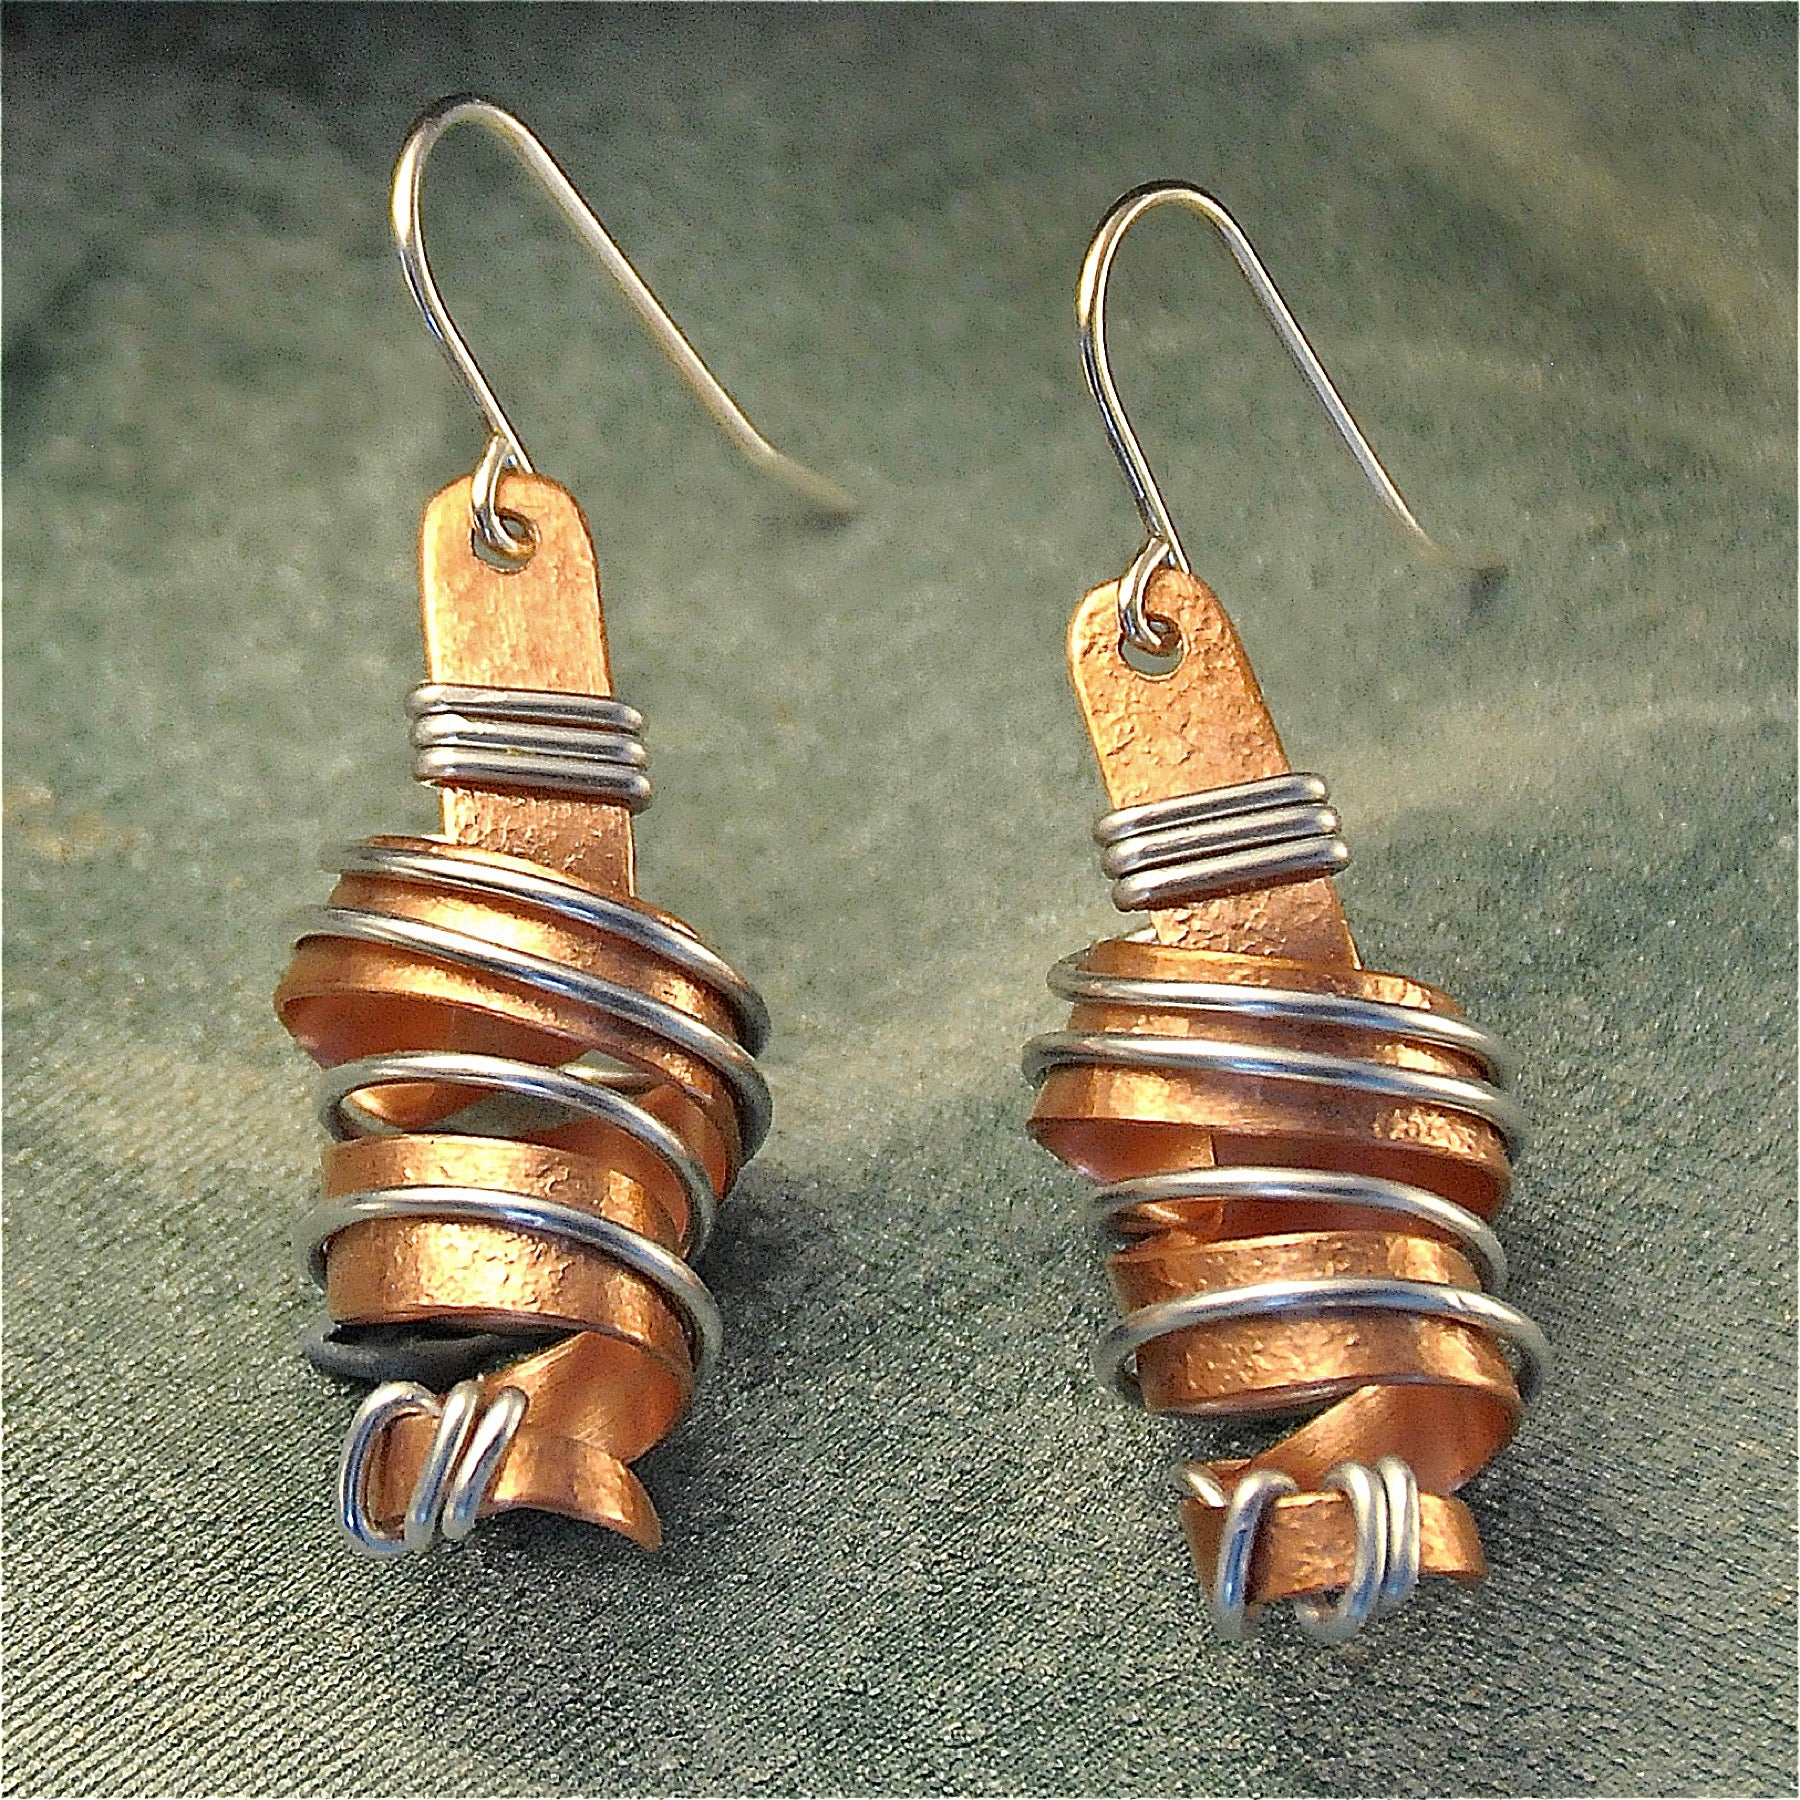 Small wire wrapped twirly copper earrings